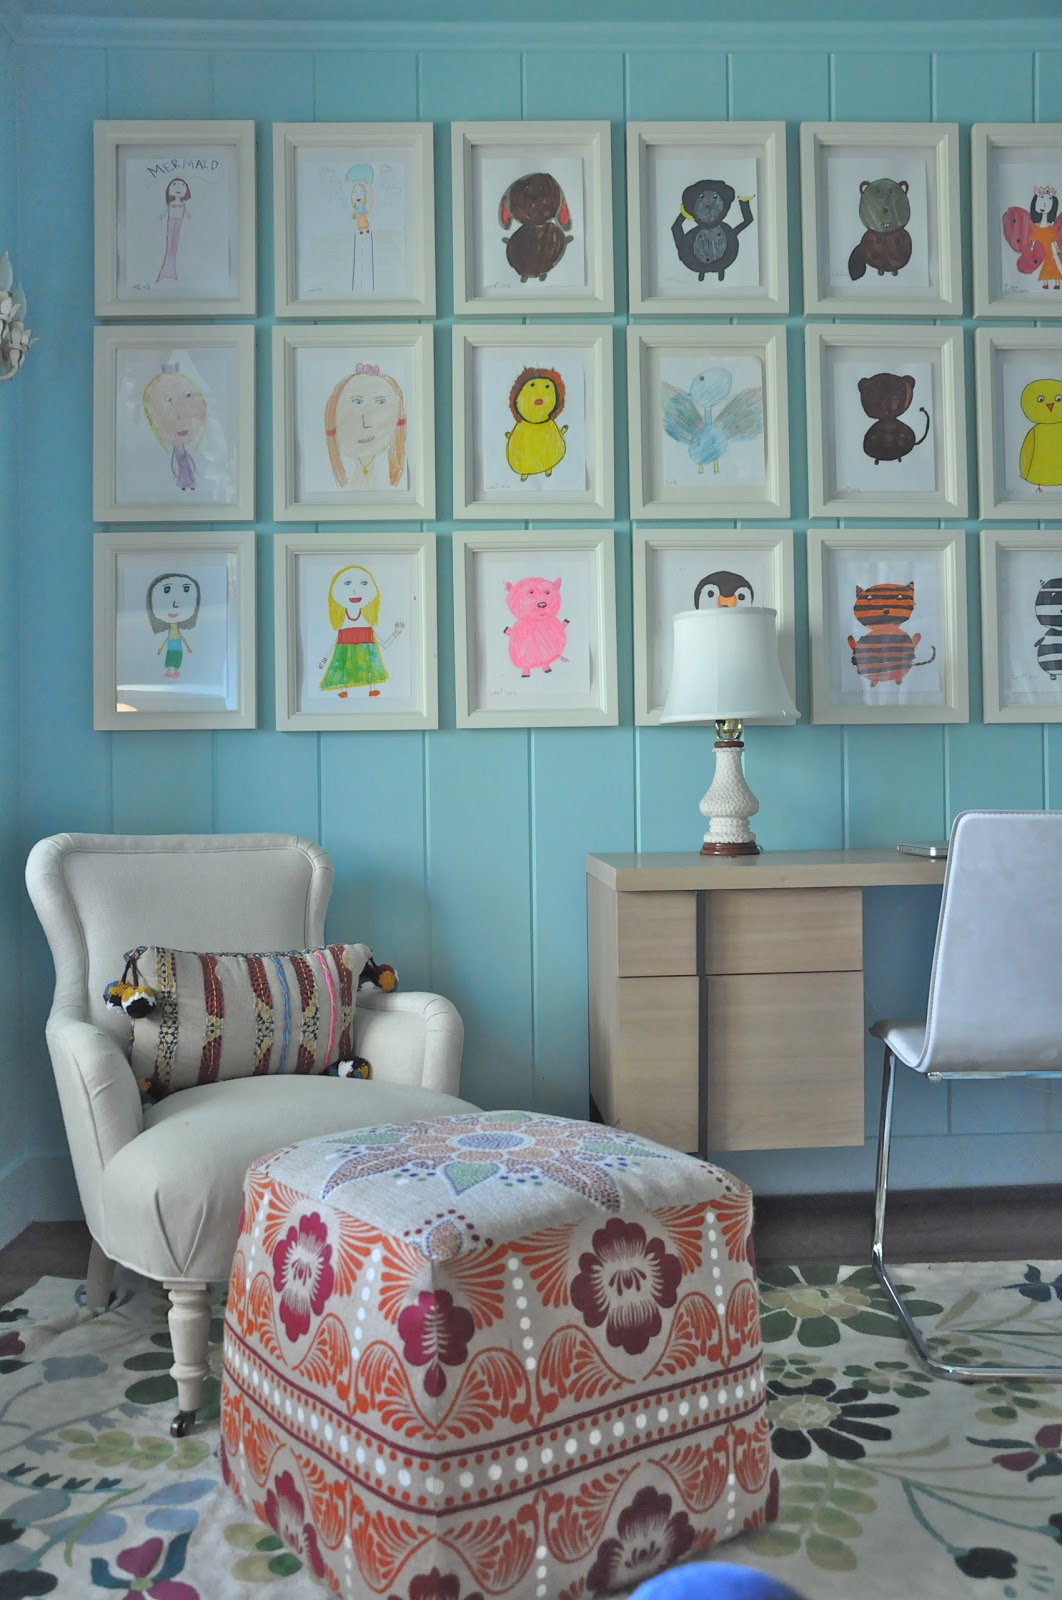 1 Year Old Room Ideas A 10 Year Old 39s Room By Giannetti Designs Via Made By